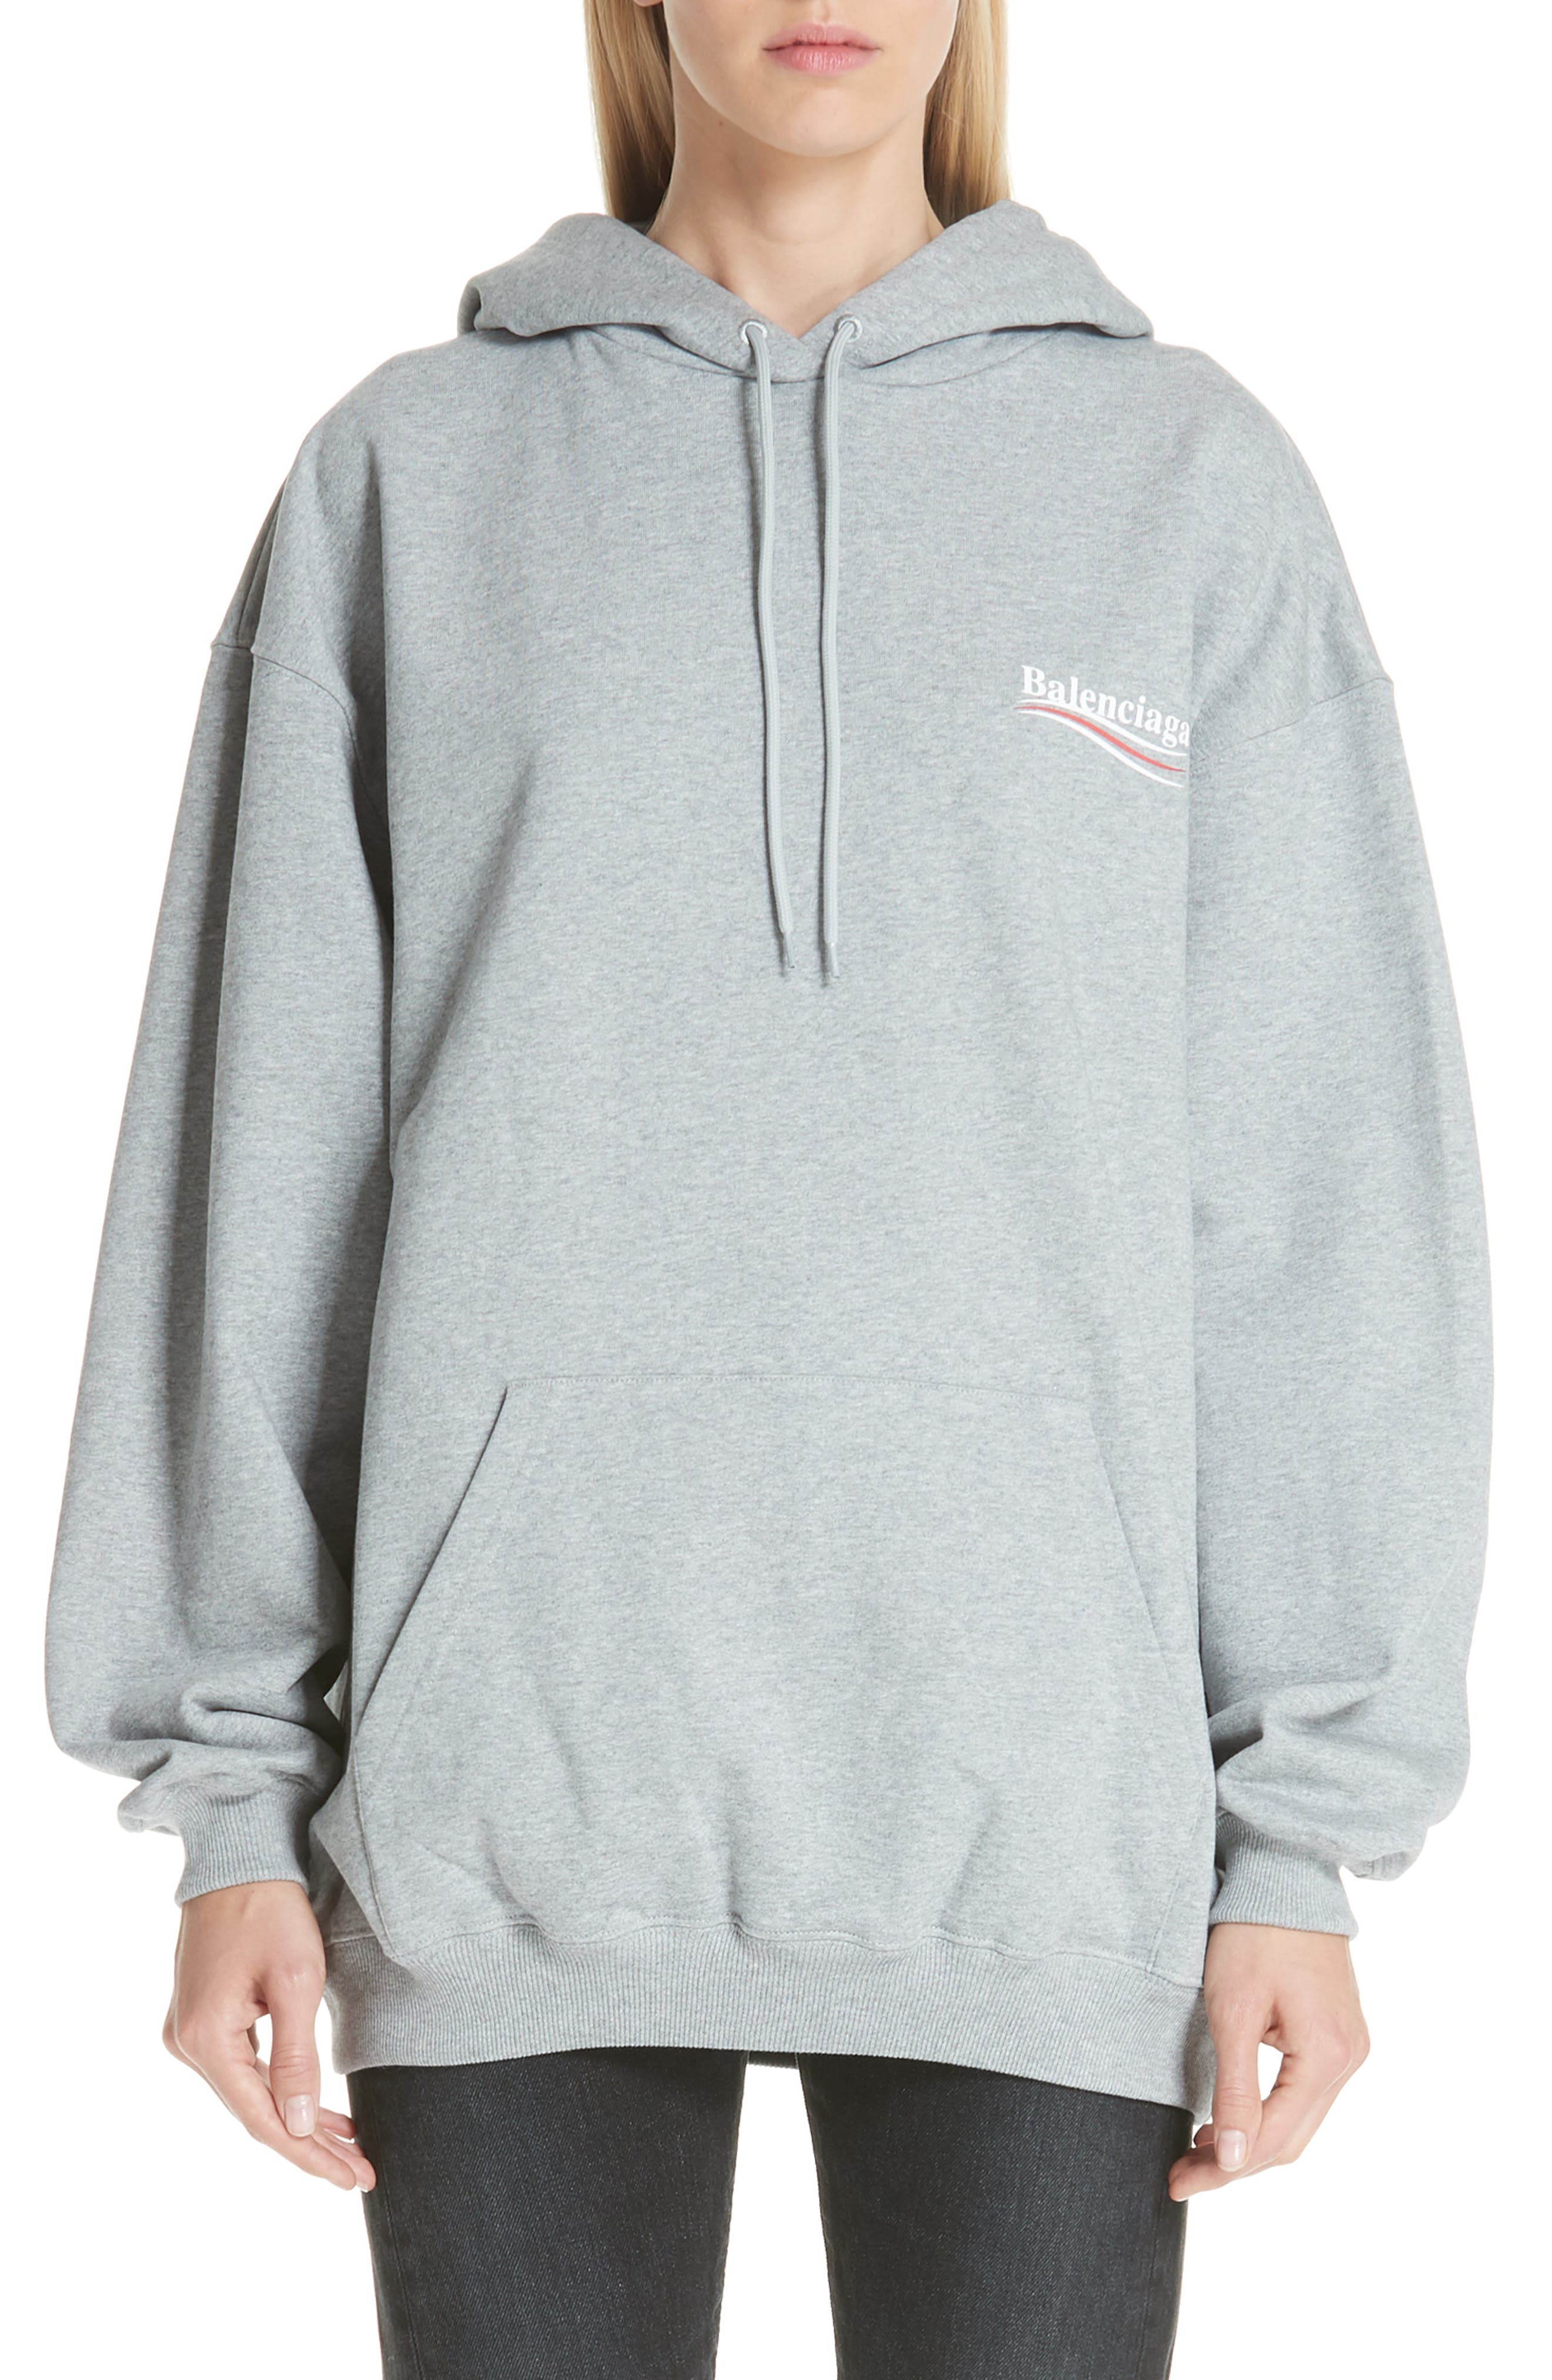 Campaign Logo Hoodie,                             Main thumbnail 1, color,                             020